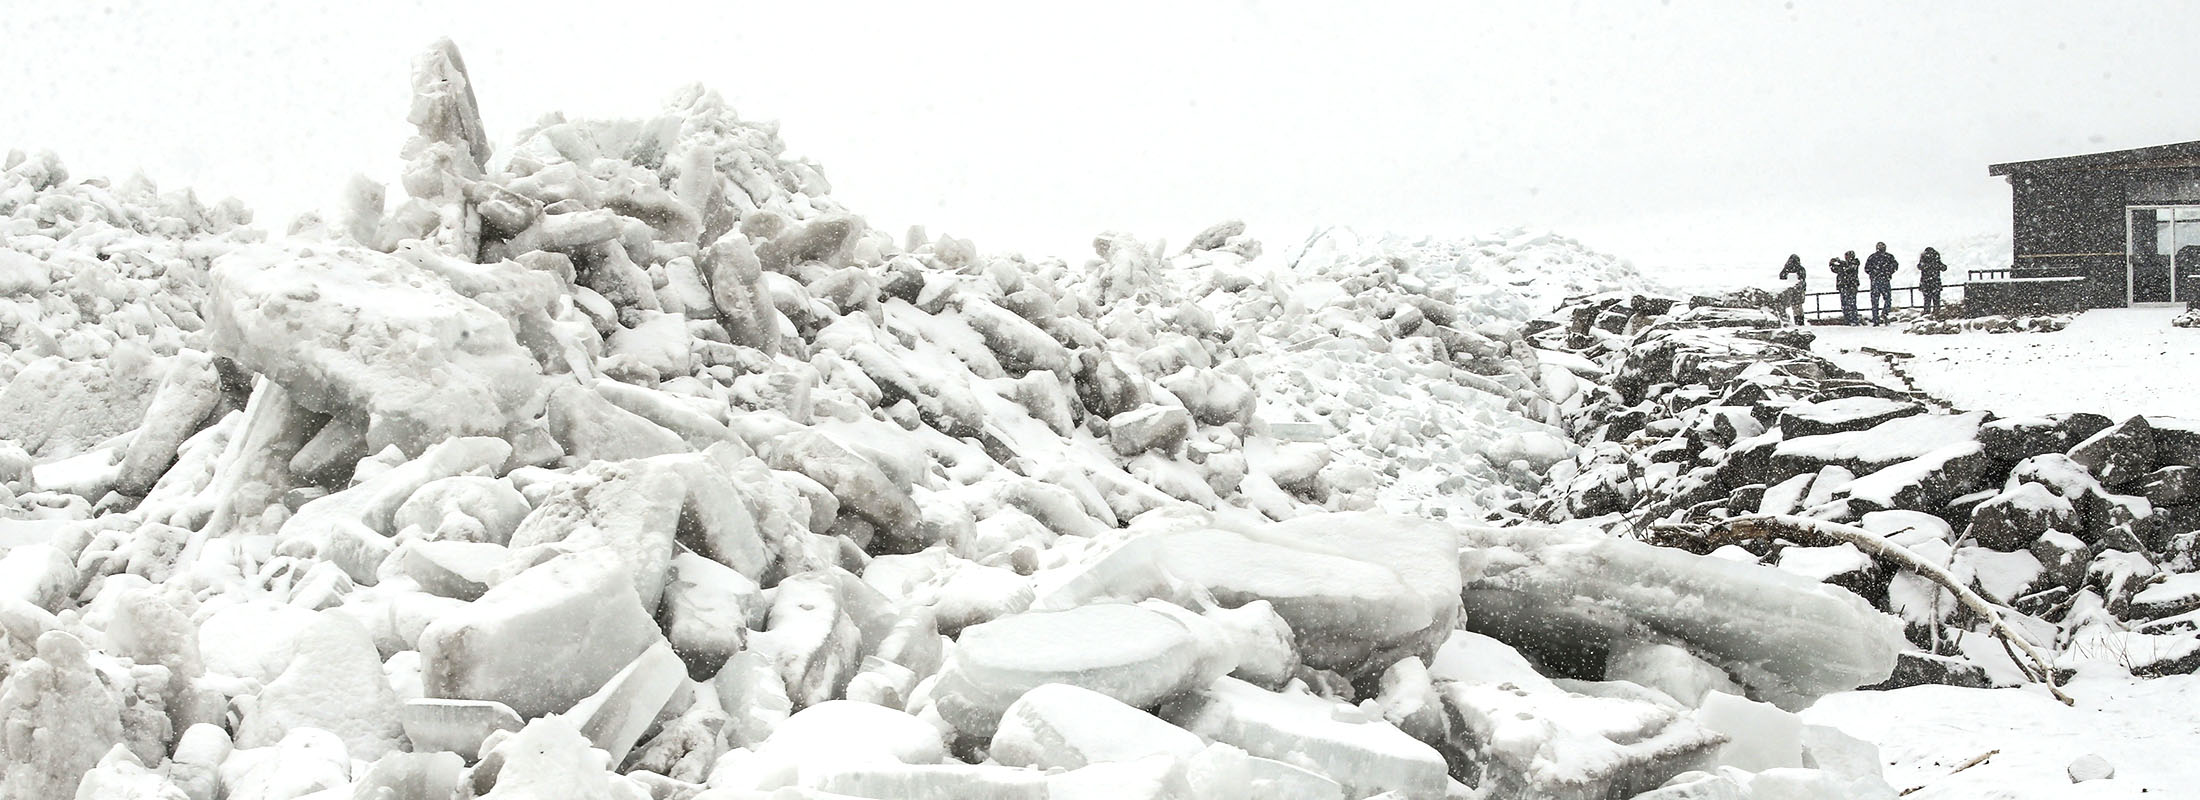 Onlookers check out the mountains of ice left on Hoover Beach after the past week's windstorm. (Derek Gee/Buffalo News)